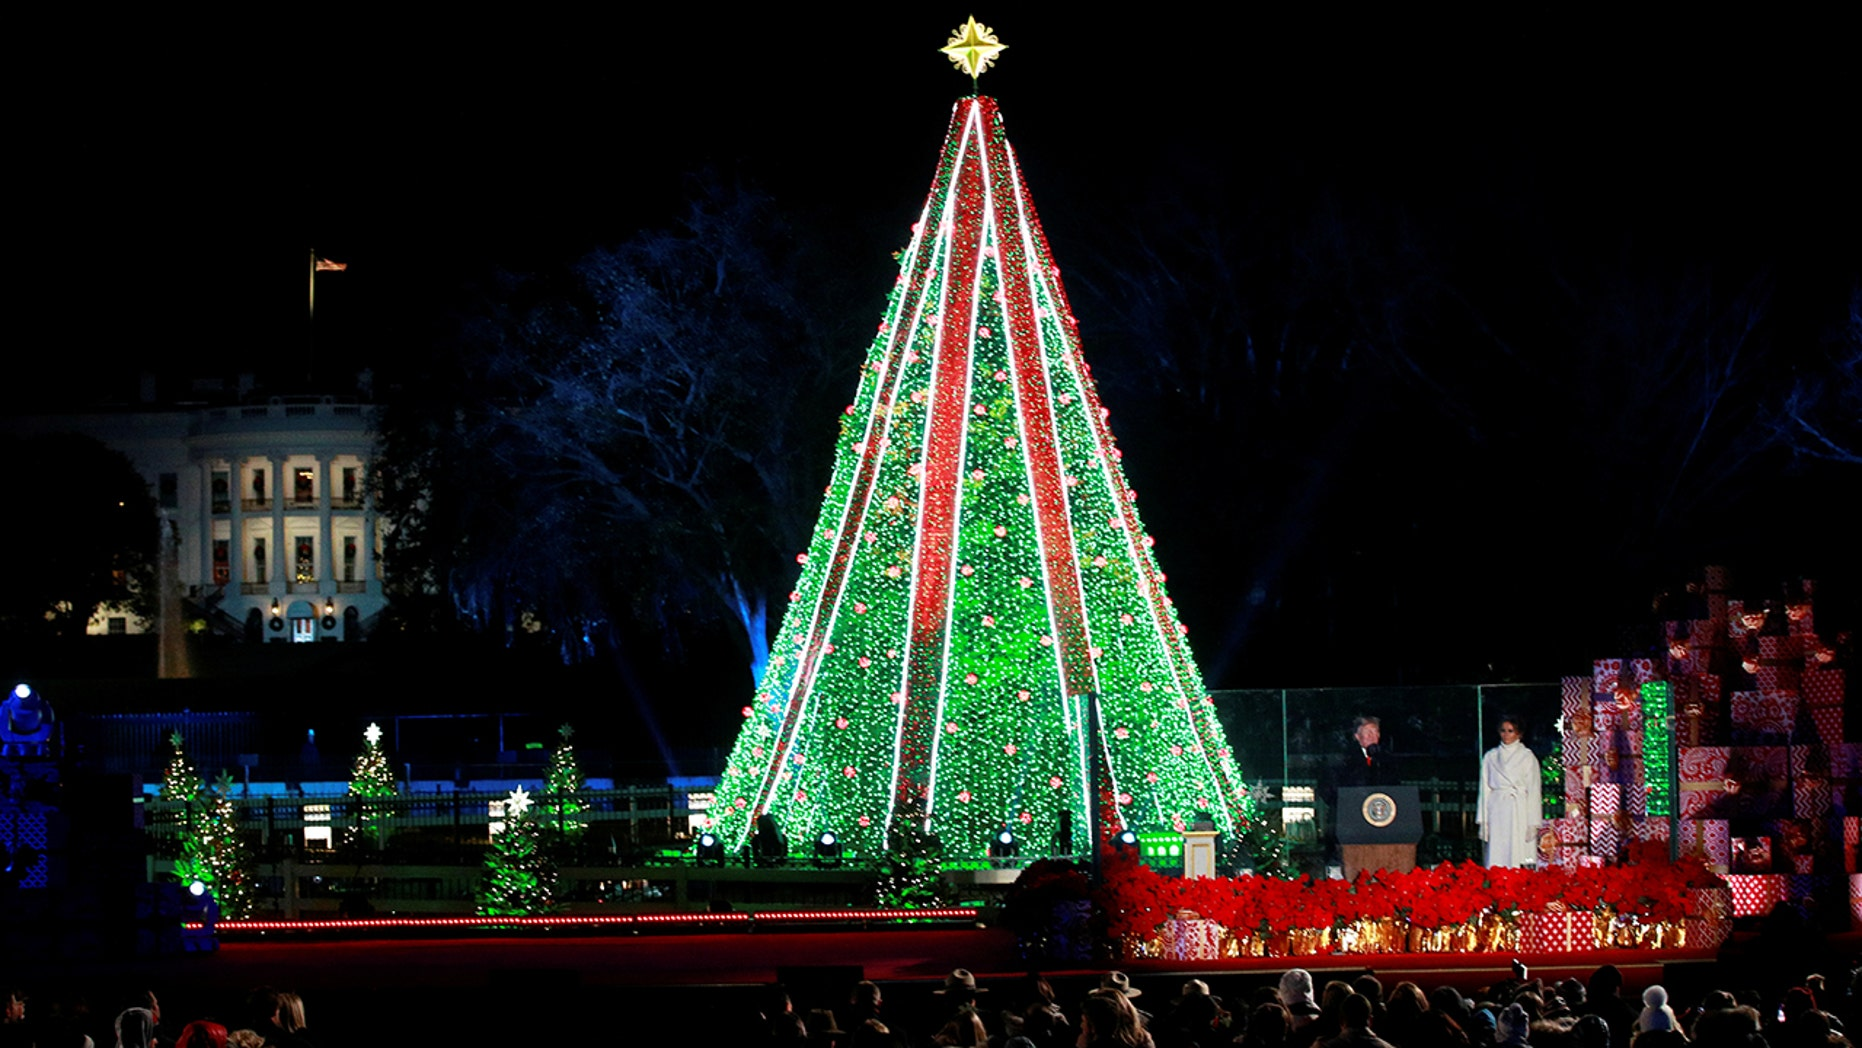 American has damaged the Christmas tree in front of the White house